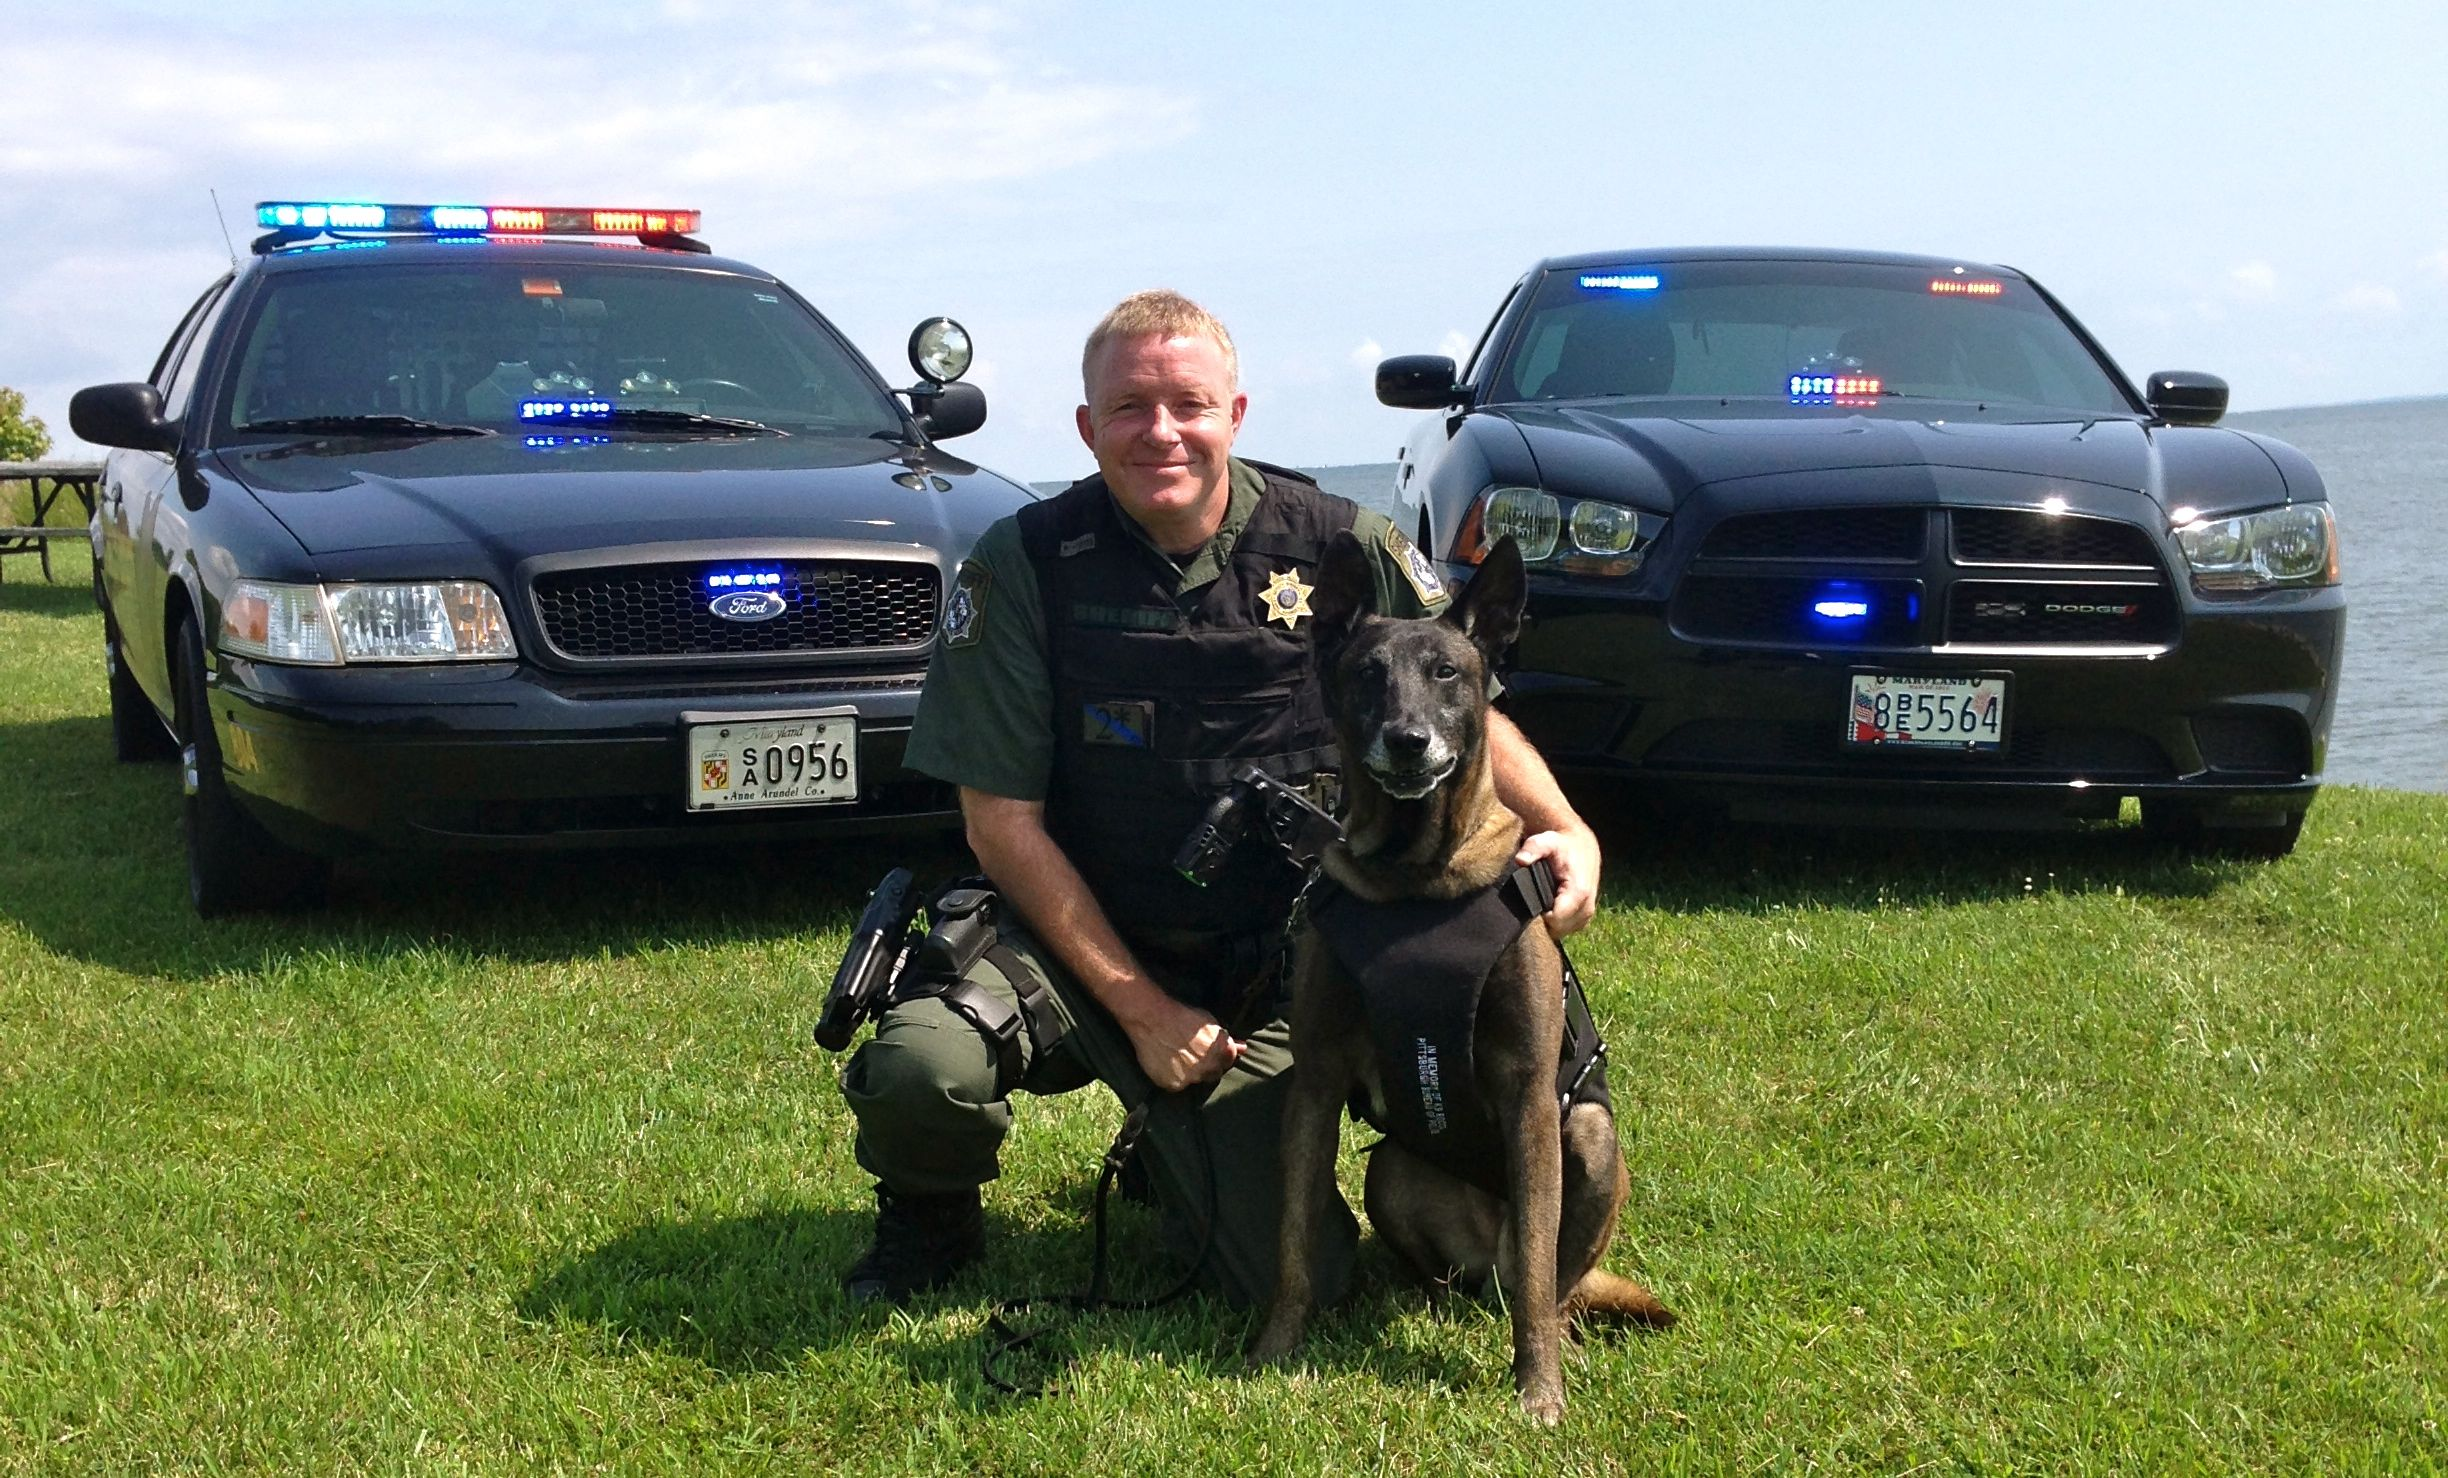 K9 Grim, handled by Lcp. Jason Jett, is trained in Patrol/Explosive Detection.